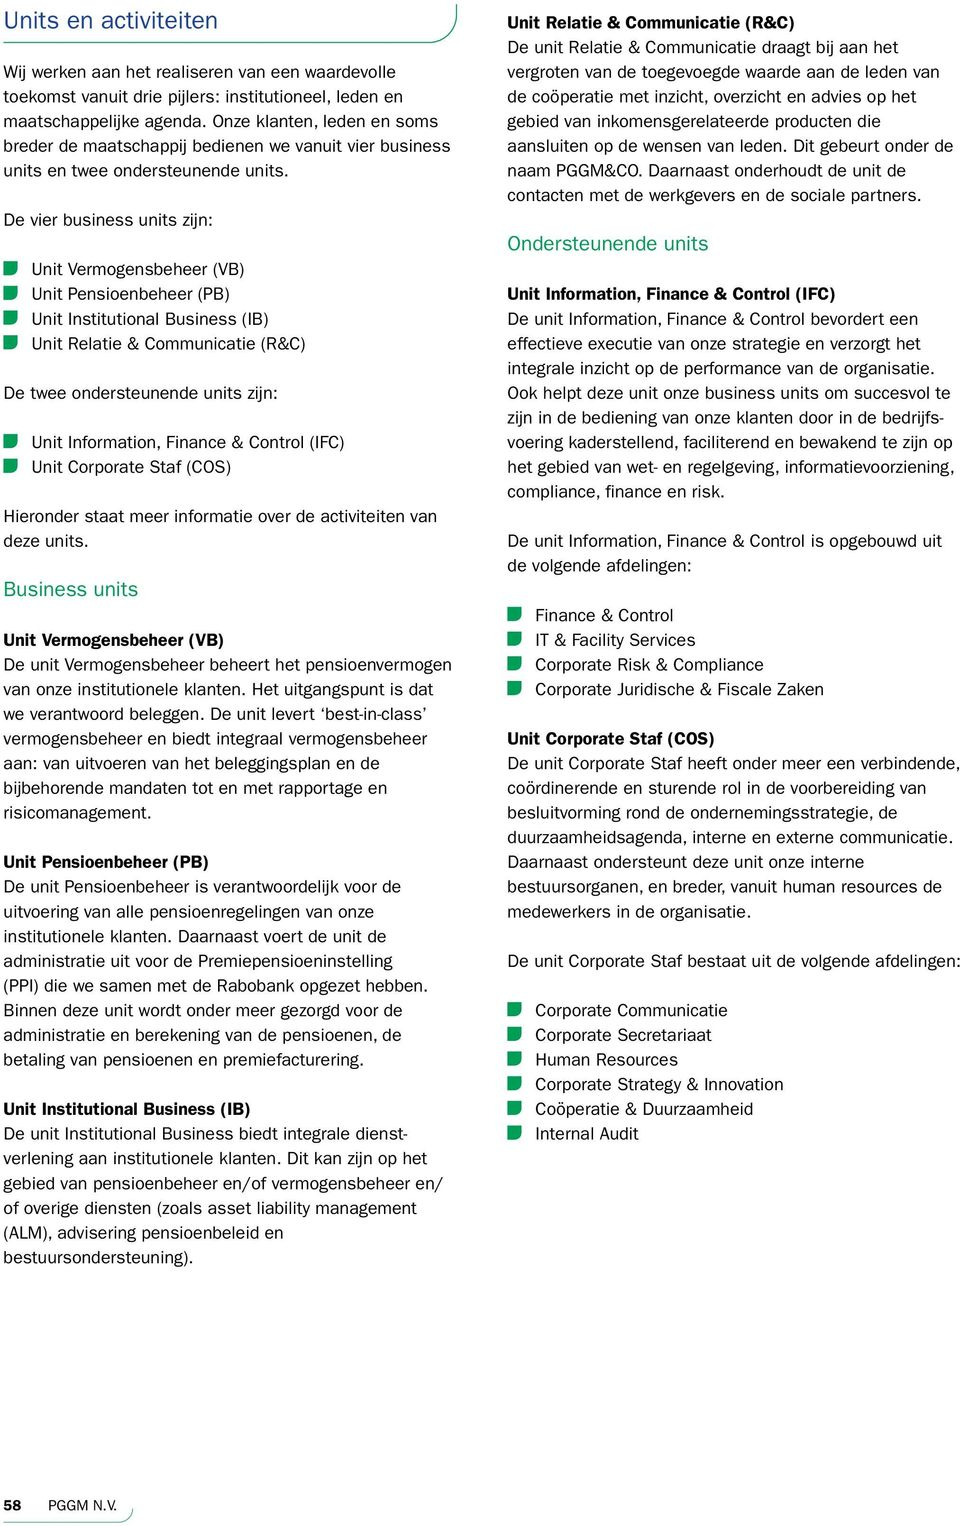 De vier business units zijn: Unit Vermogensbeheer (VB) Unit Pensioenbeheer (PB) Unit Institutional Business (IB) Unit Relatie & Communicatie (R&C) De twee ondersteunende units zijn: Unit Information,